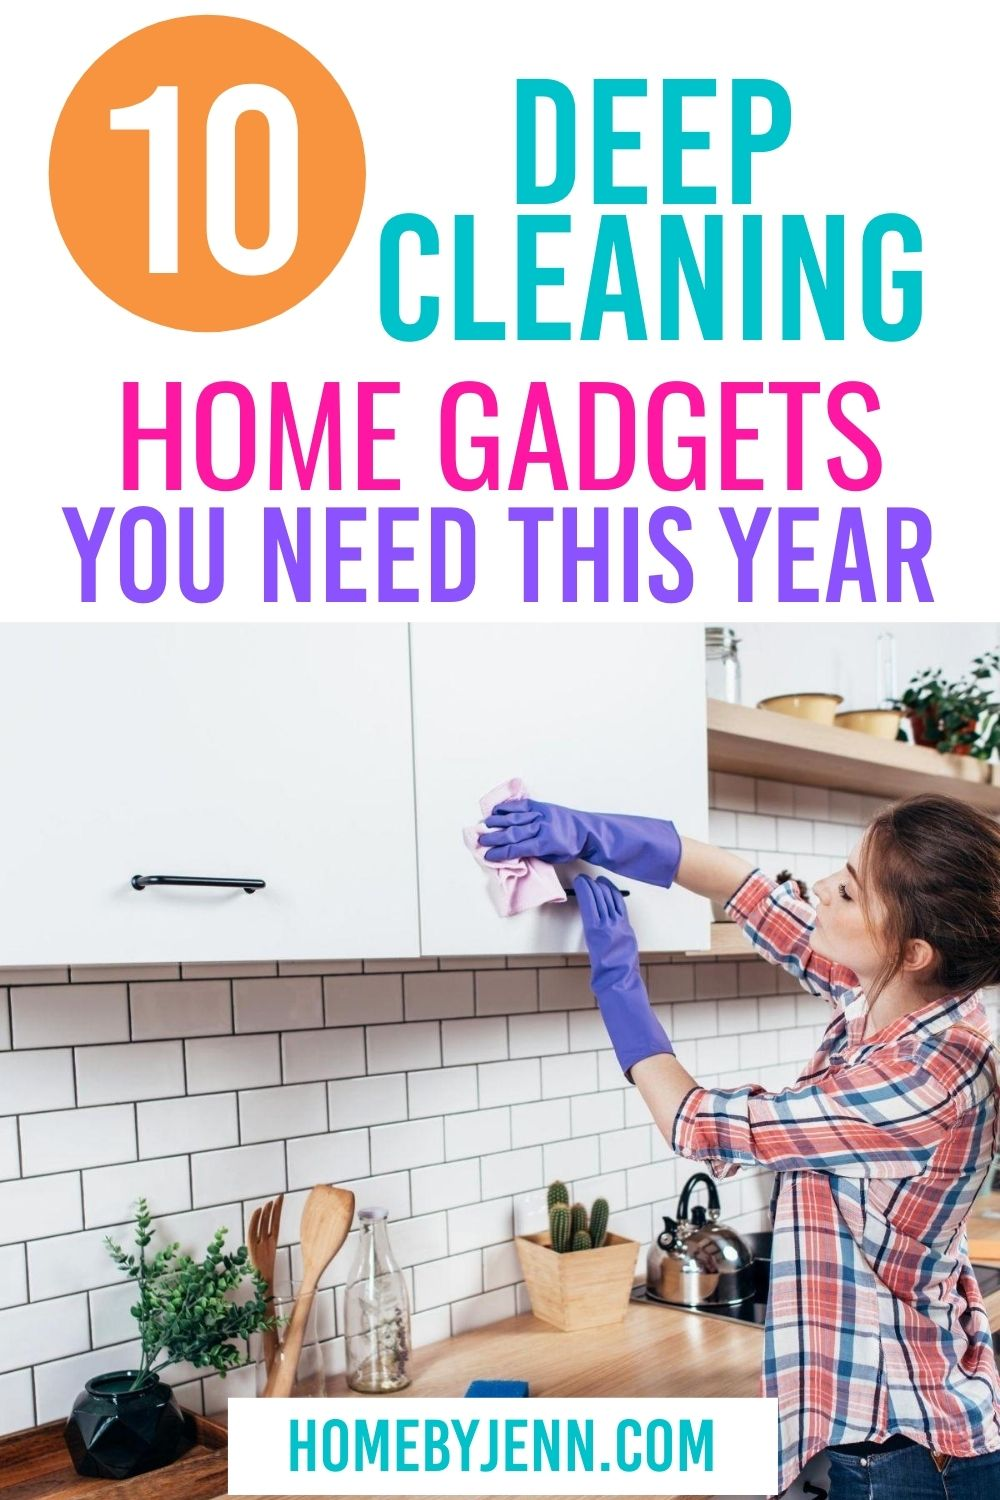 Deep clean your house with these must have cleaning gadgets. These cleaning tips will help you deep clean your home in no time. #cleaning #cleanhome #cleaningtipsandtricks #cleaninghacks via @homebyjenn